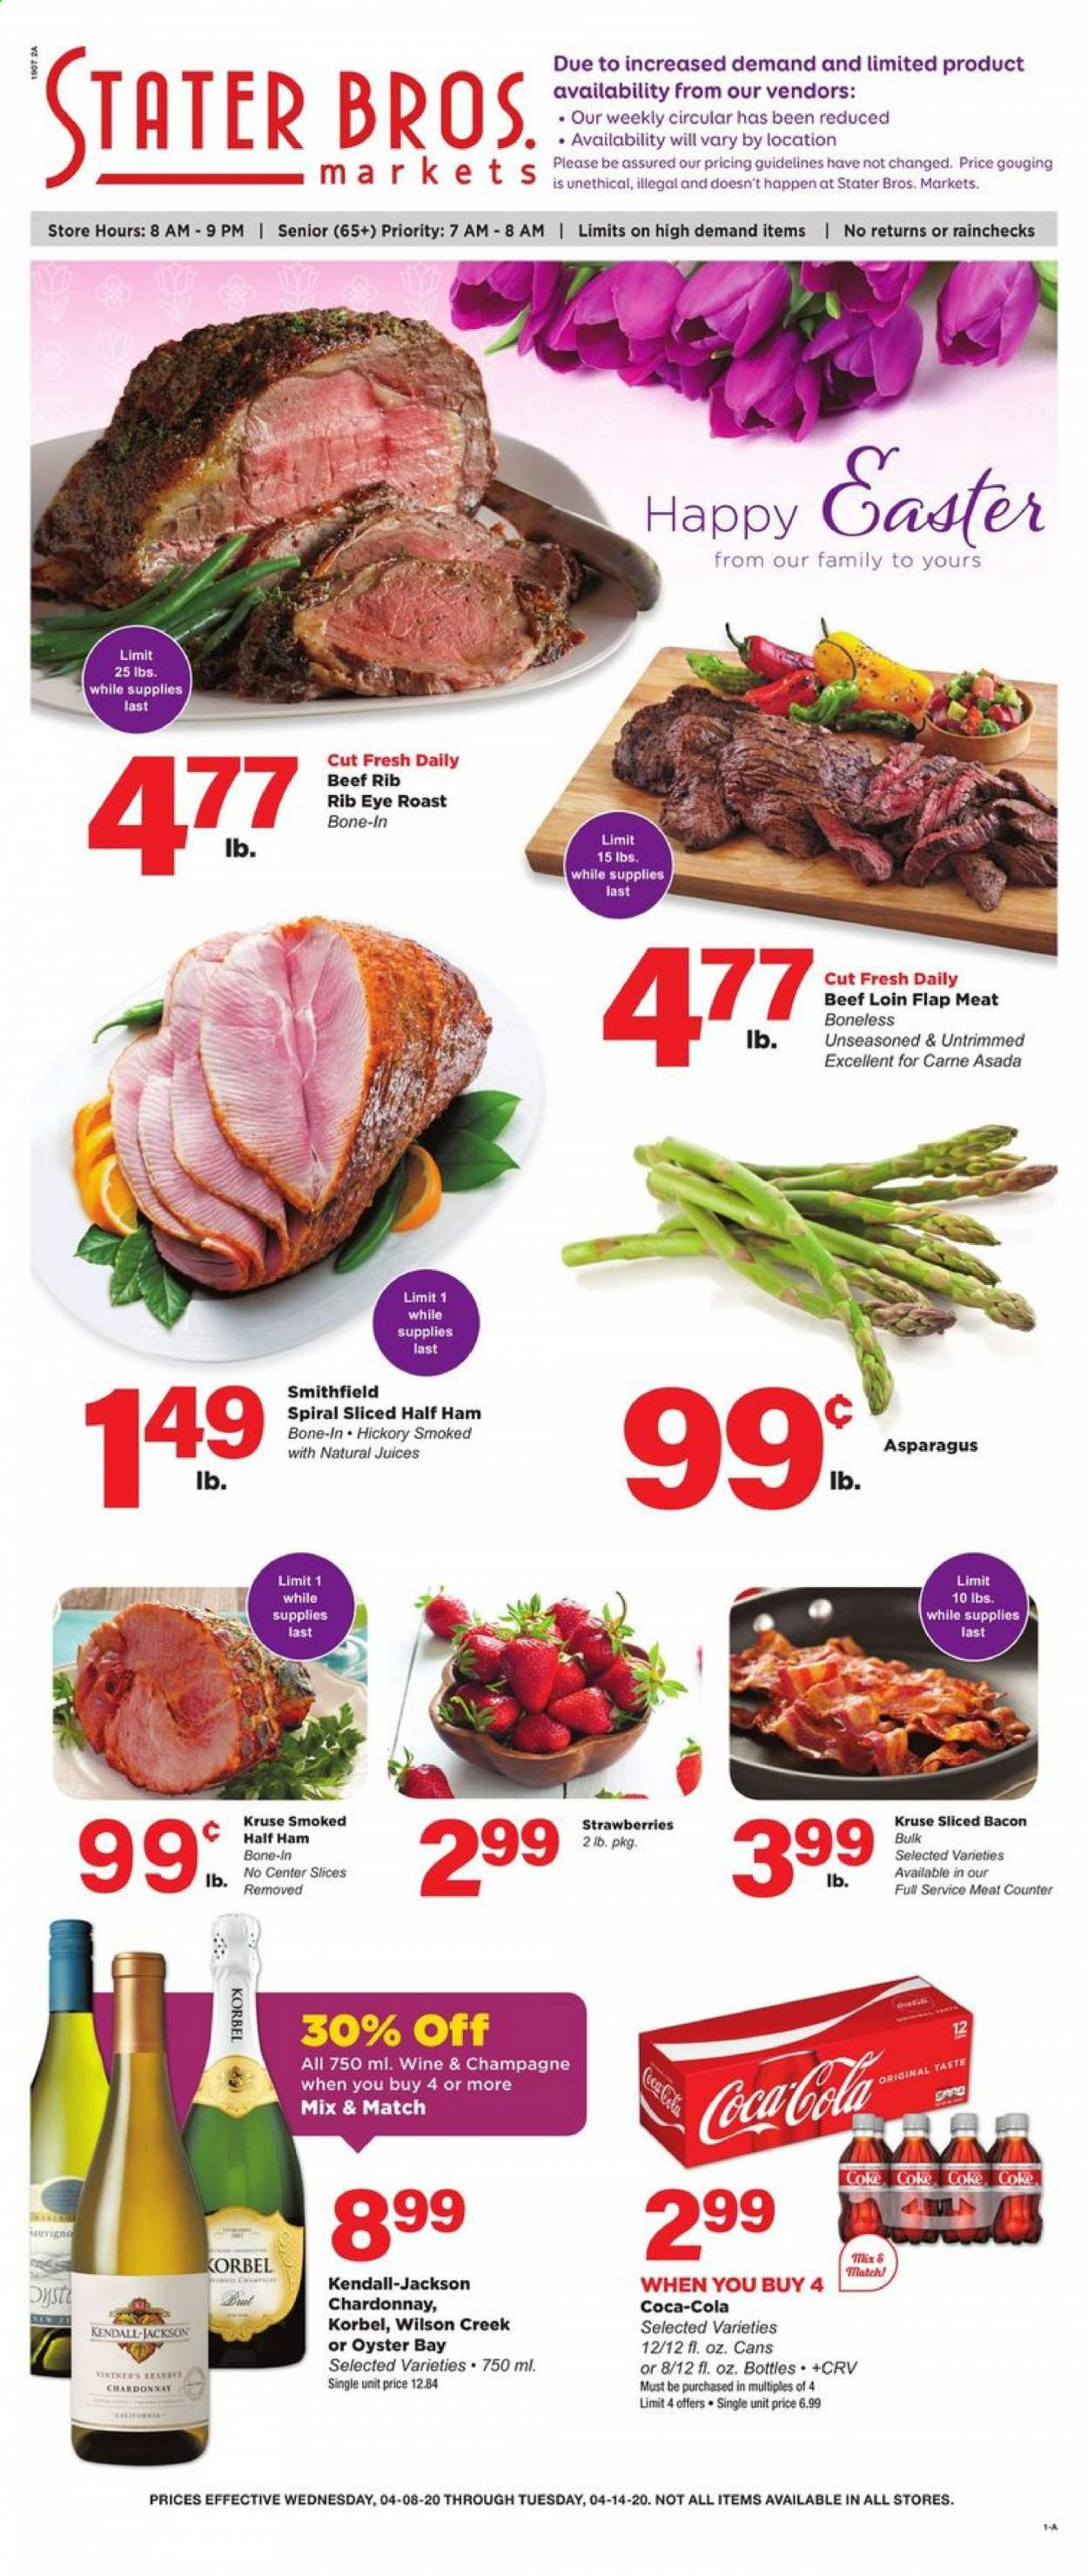 Stater Bros. Flyer  - 04.08.2020 - 04.14.2020. Page 1.